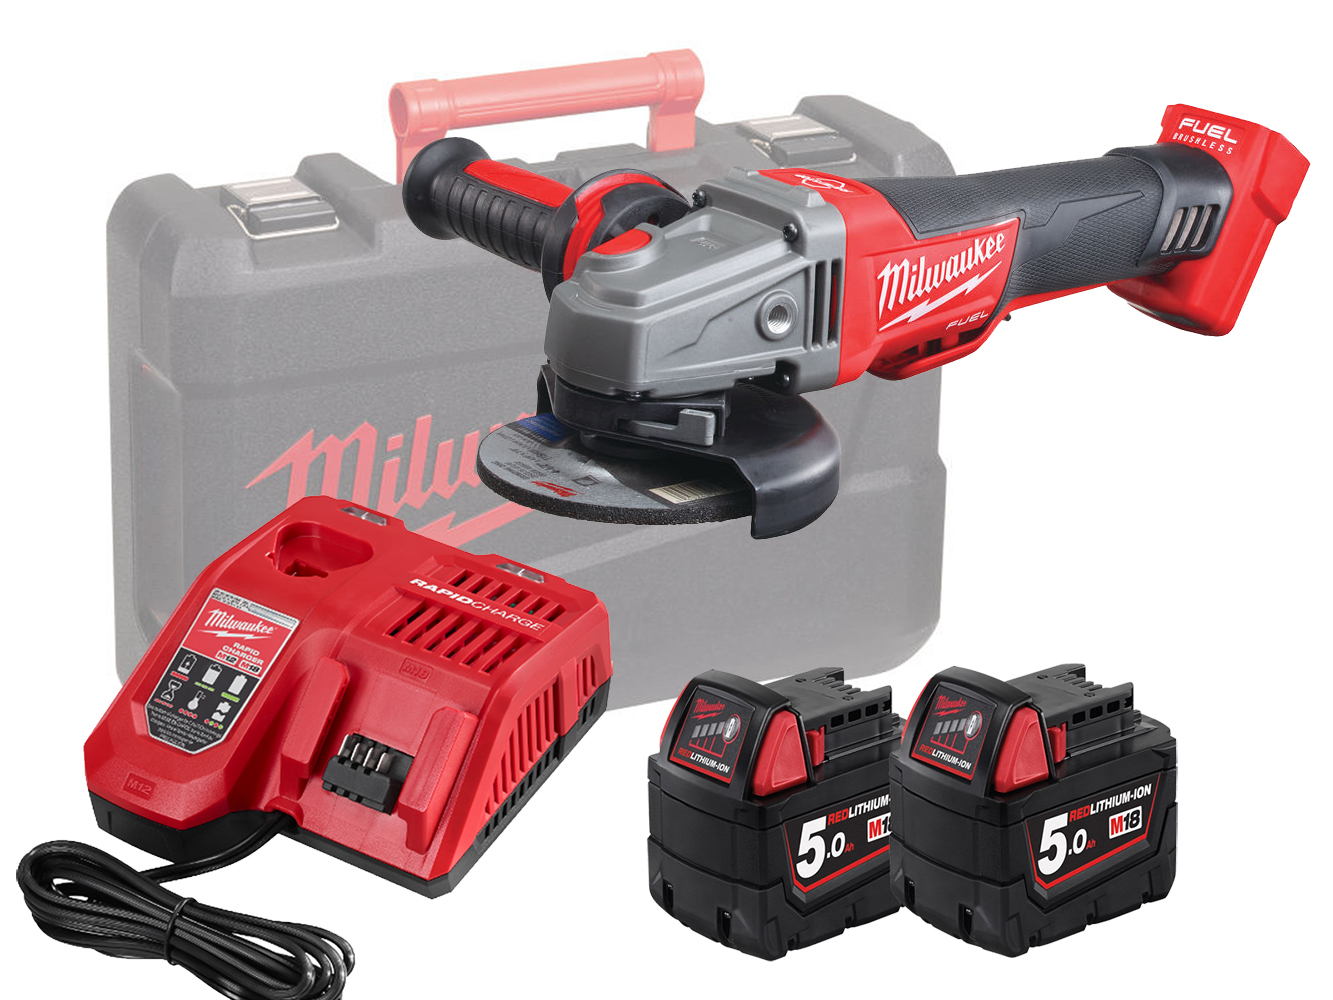 Milwaukee M18CAG115XPDB 18V Fuel 115mm Breaking Grinder With Paddle Switch - 5.0Ah Pack